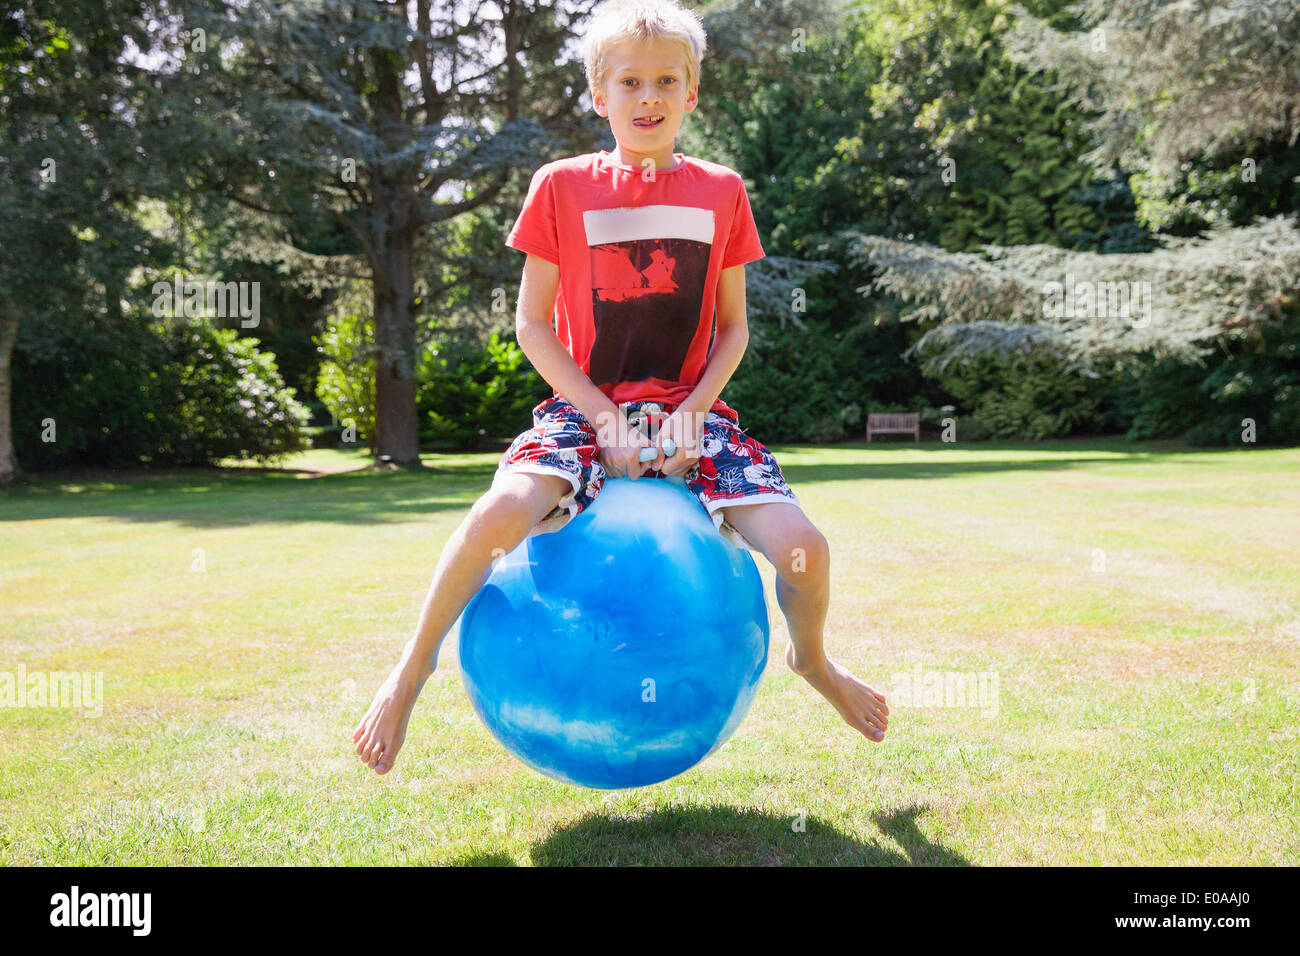 Boy jumping on space hopper - Stock Image